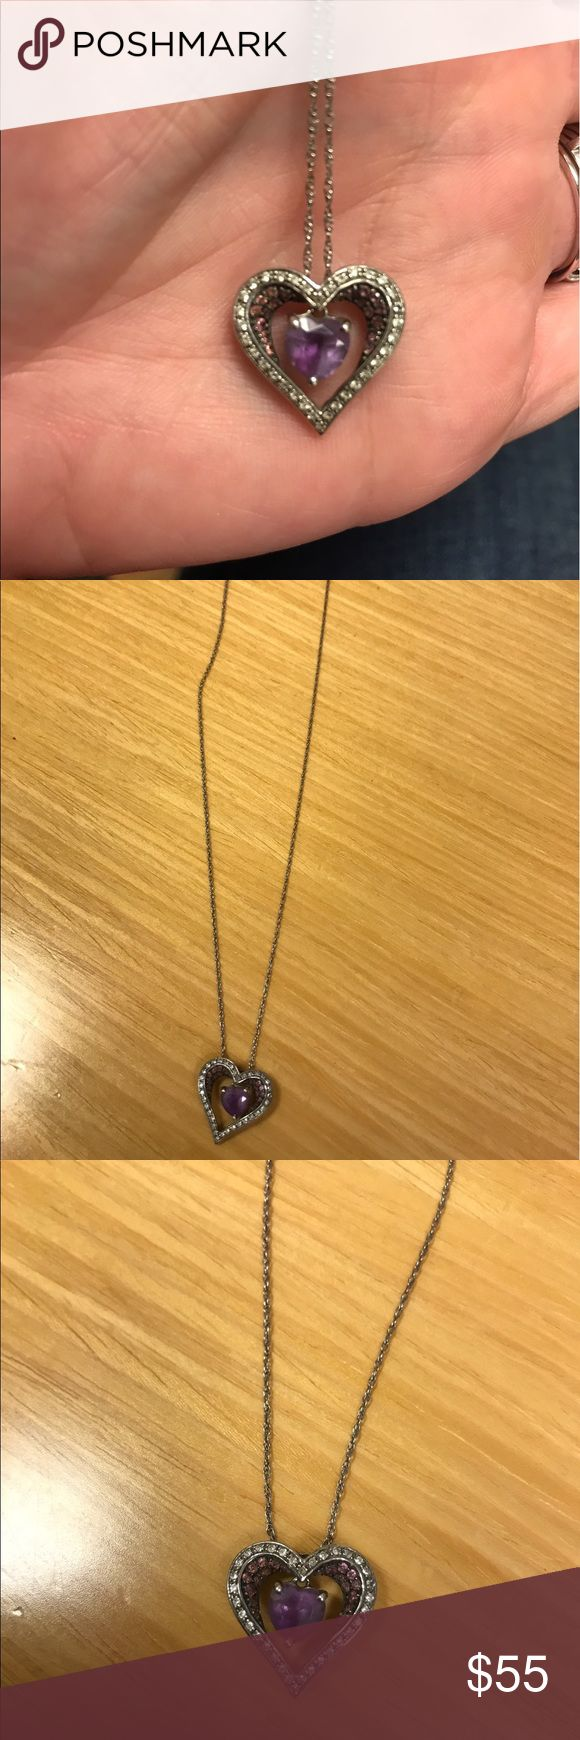 Amethyst diamond heart necklace Sterling silver necklace with rows of amethyst diamonds and a heart that dangles in the center. Kay Jewelers Jewelry Necklaces